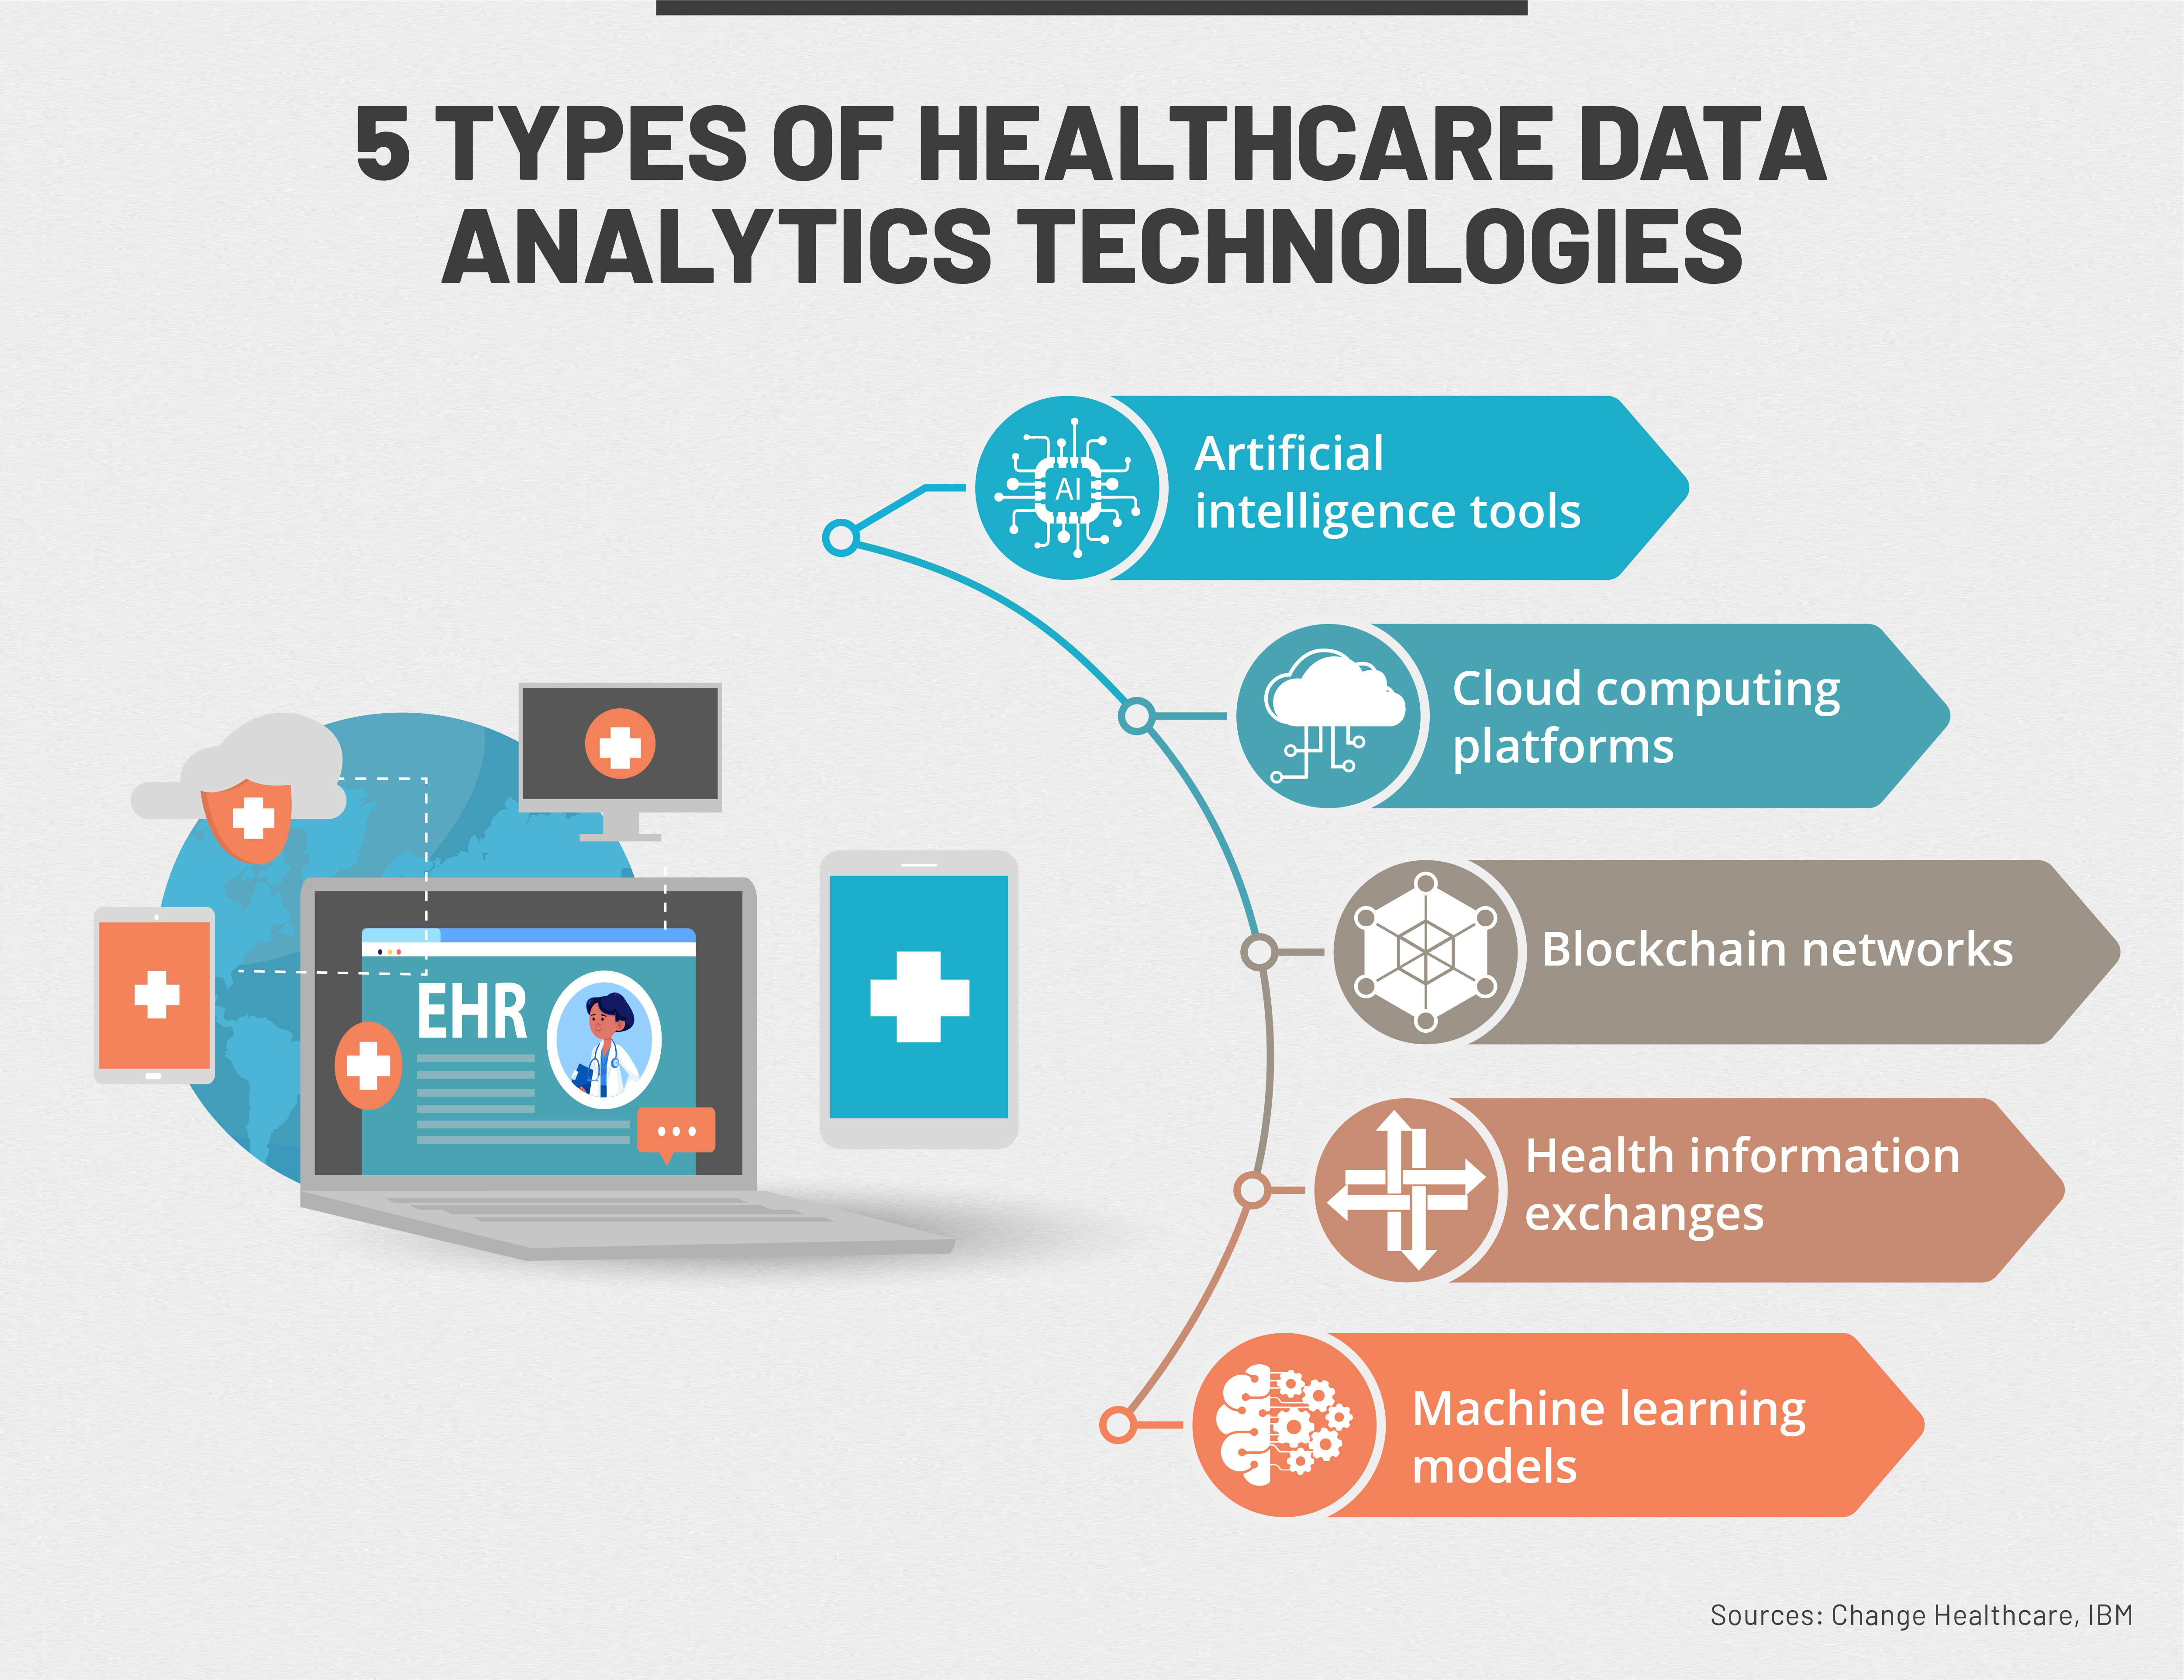 Five technologies that healthcare organizations use